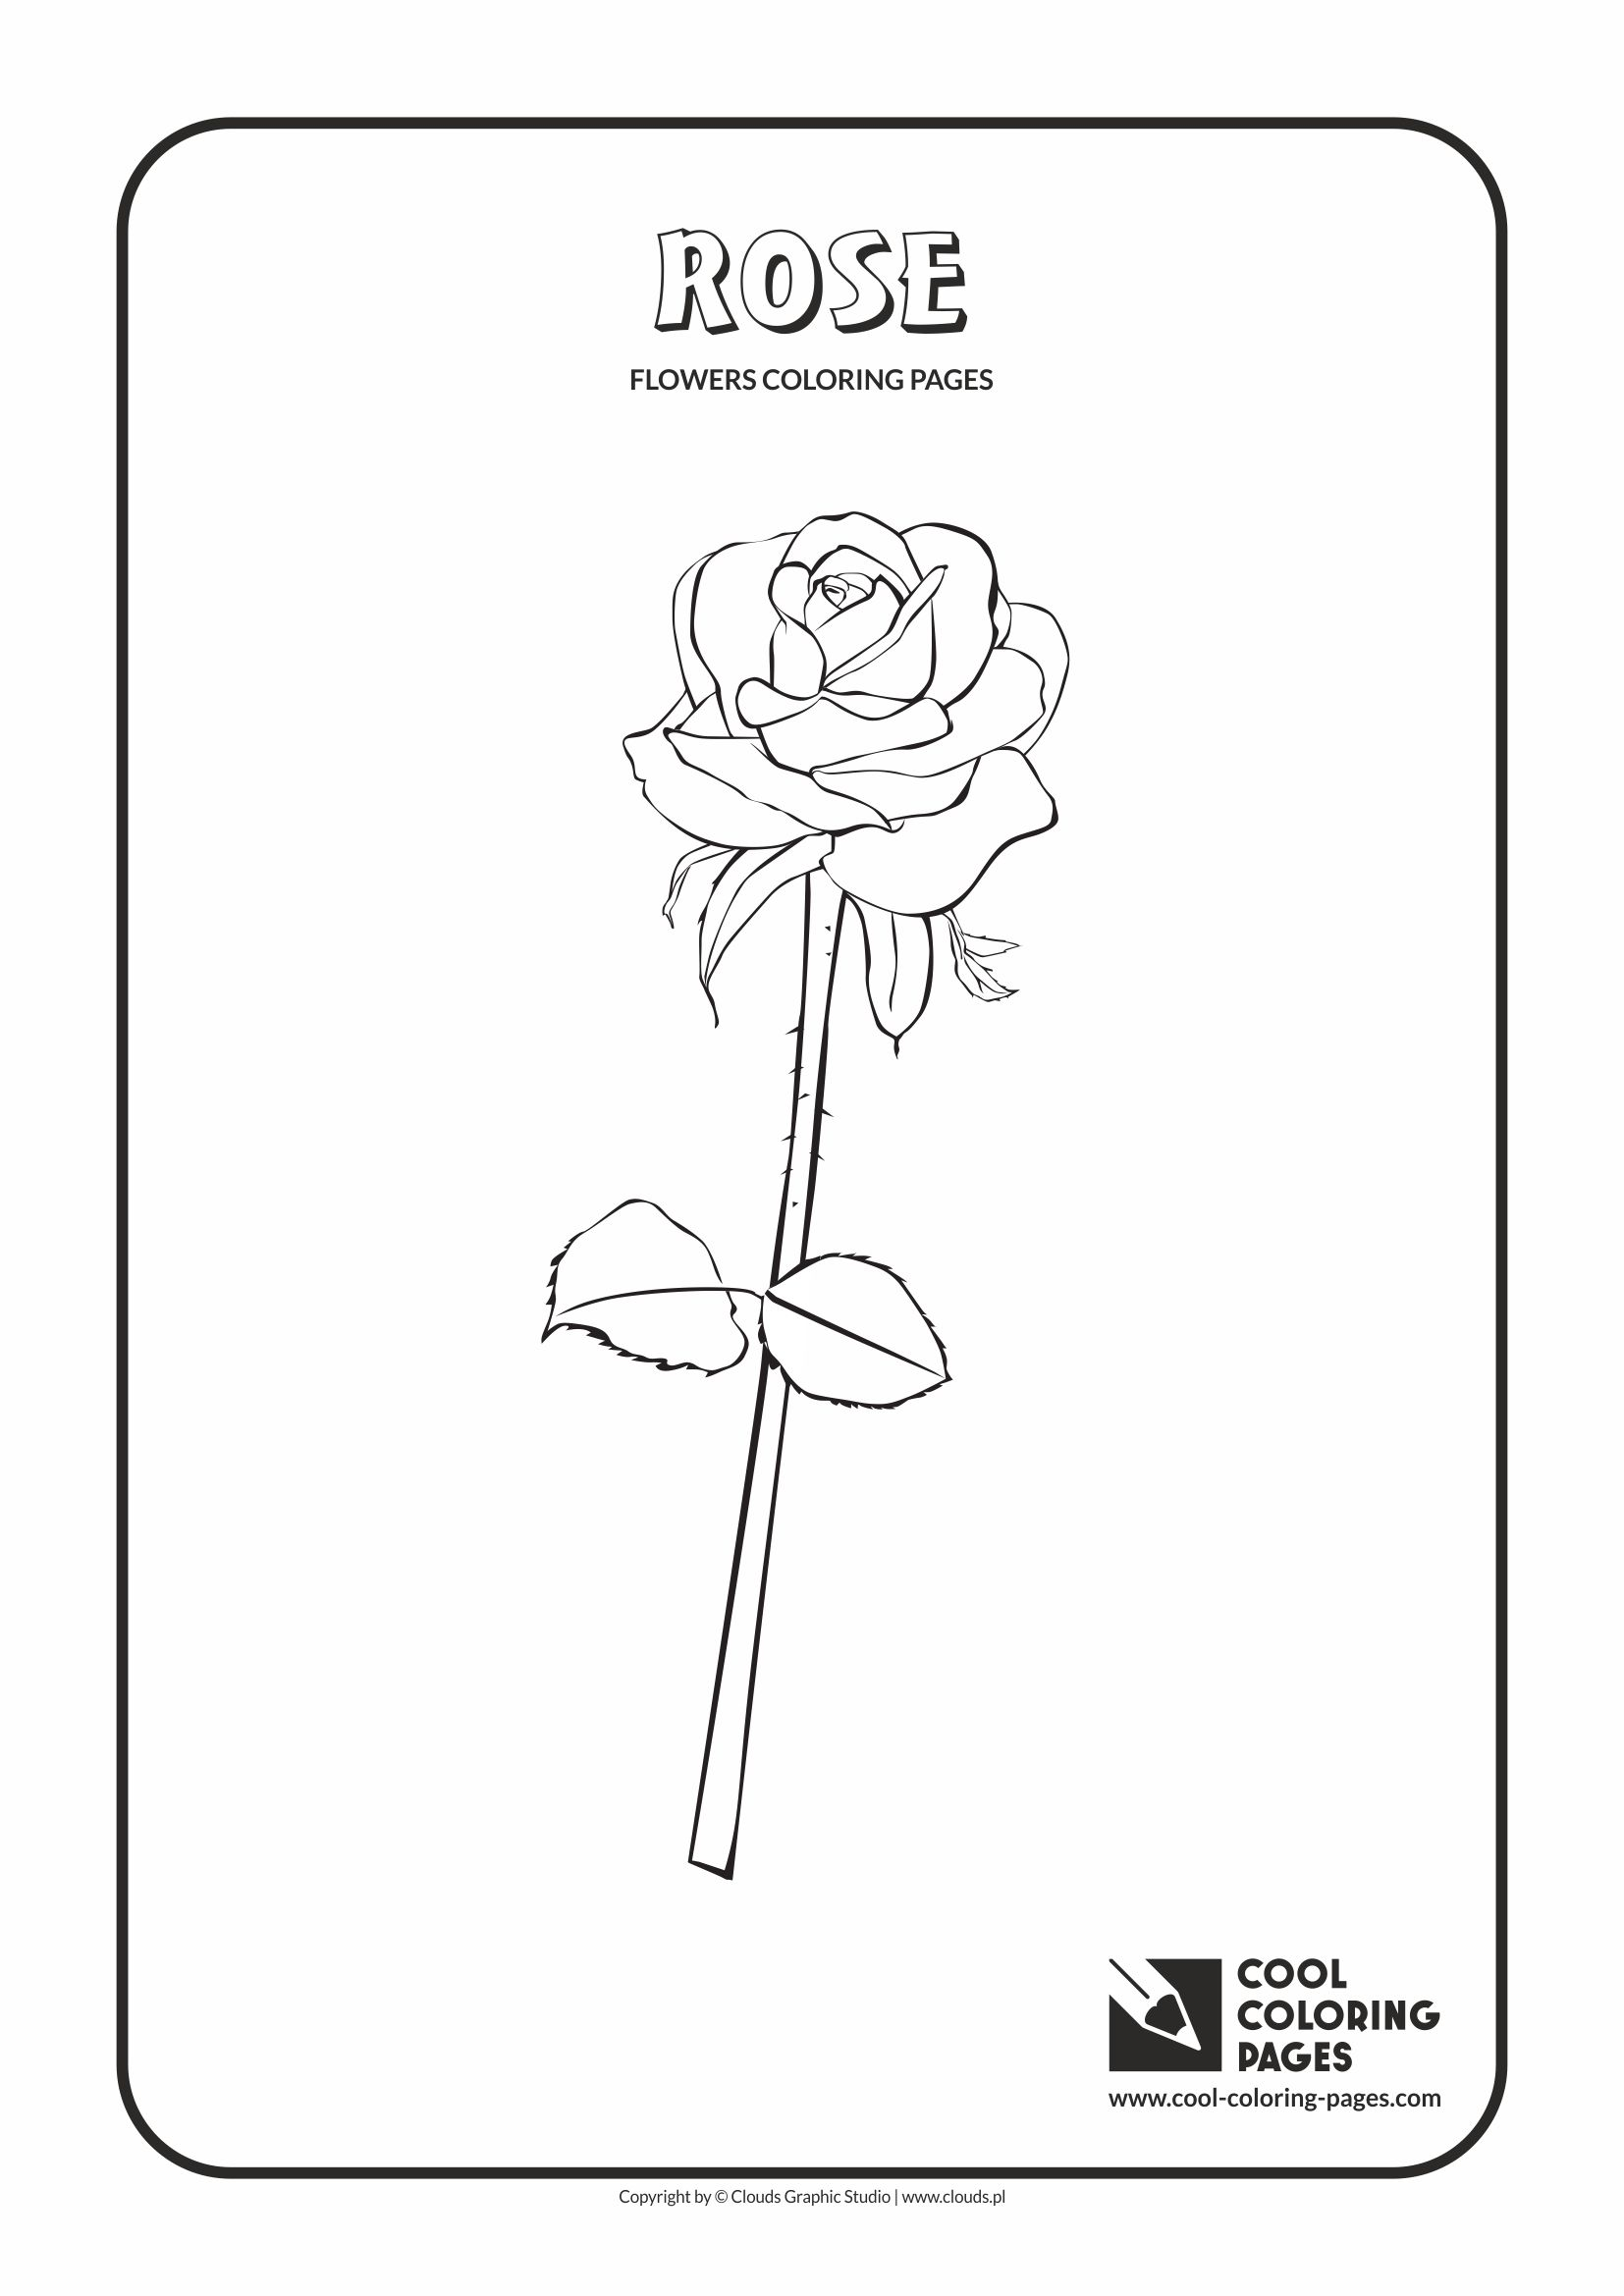 rose coloring page cool coloring pages